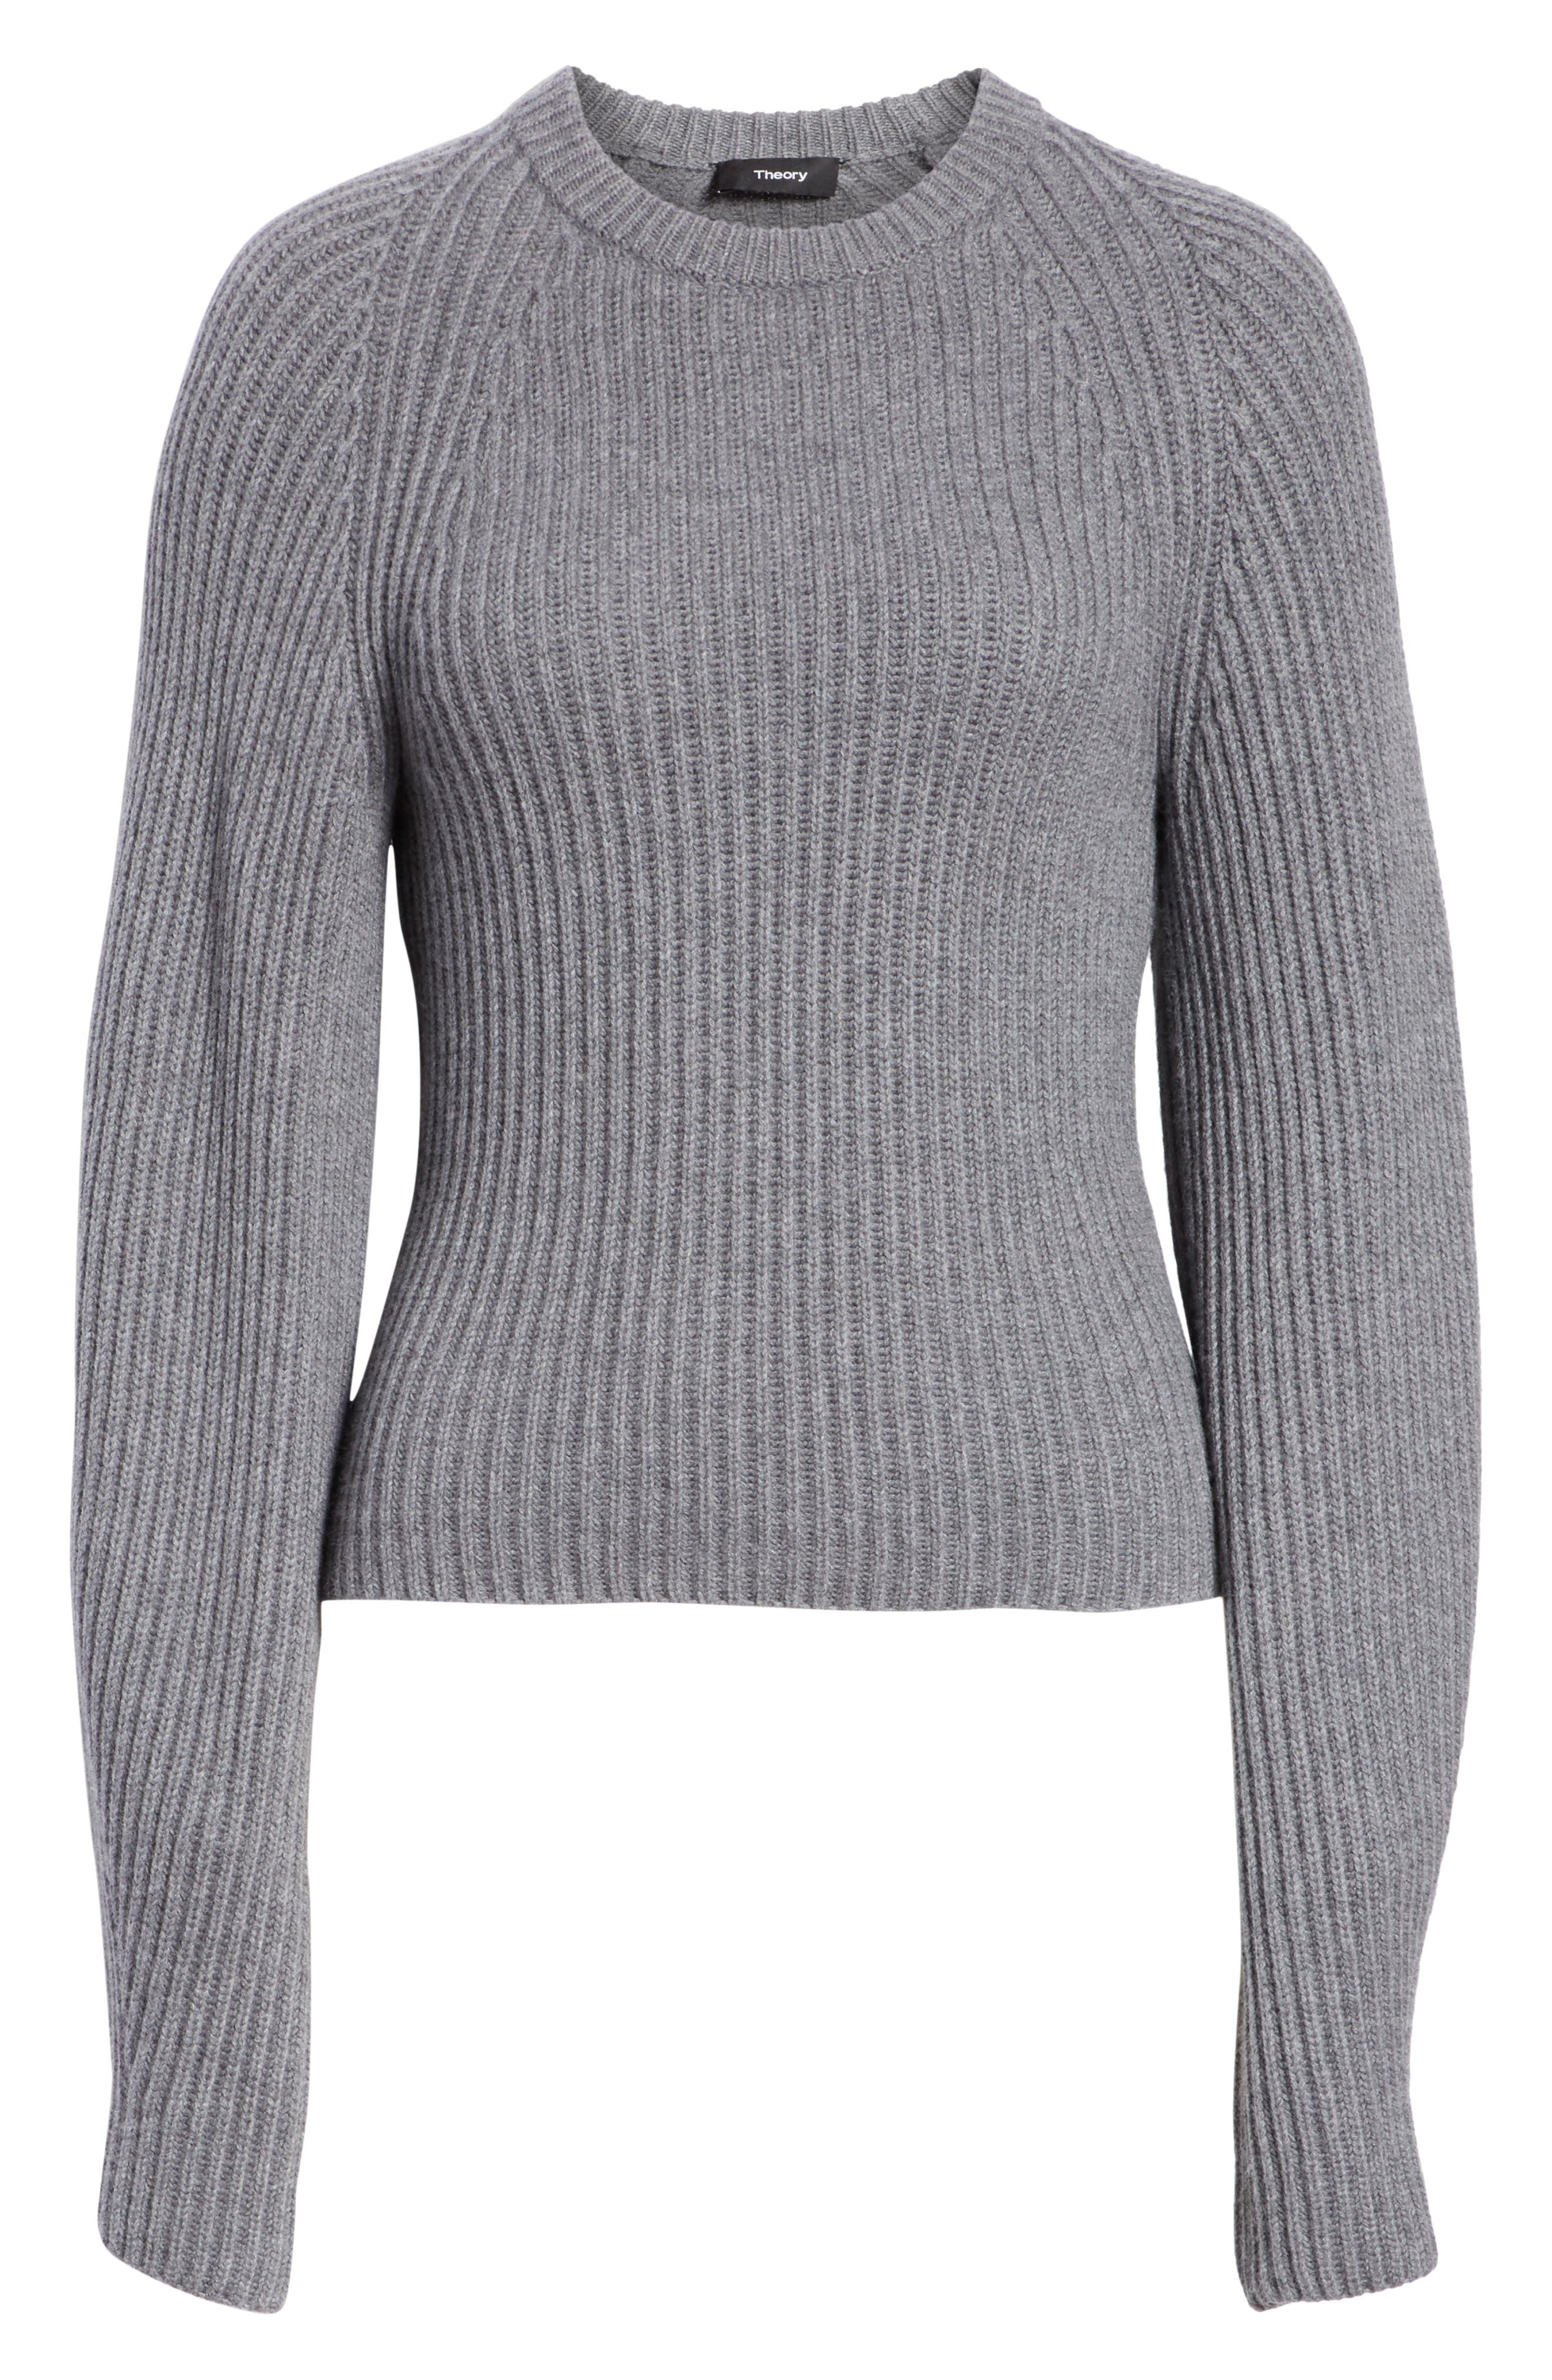 Sculpted Sleeve Shaker Stitch Merino Wool Sweater,                             Alternate thumbnail 6, color,                             CHARCOAL